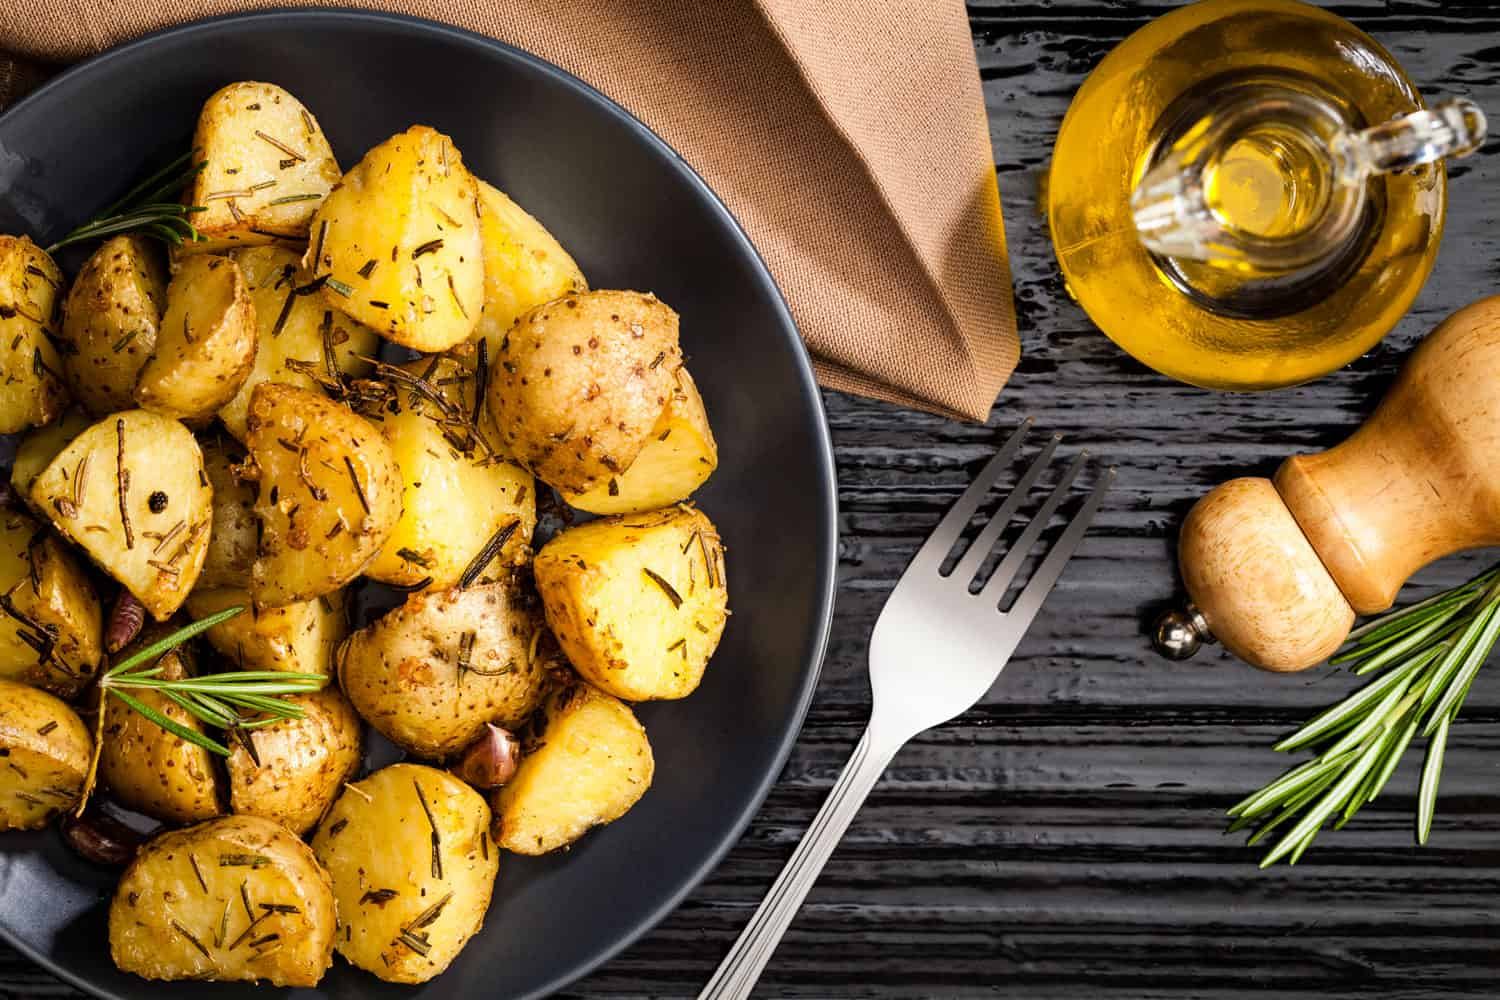 Huge sliced deep fried potatoes with oregano leaves and olive oil on the side